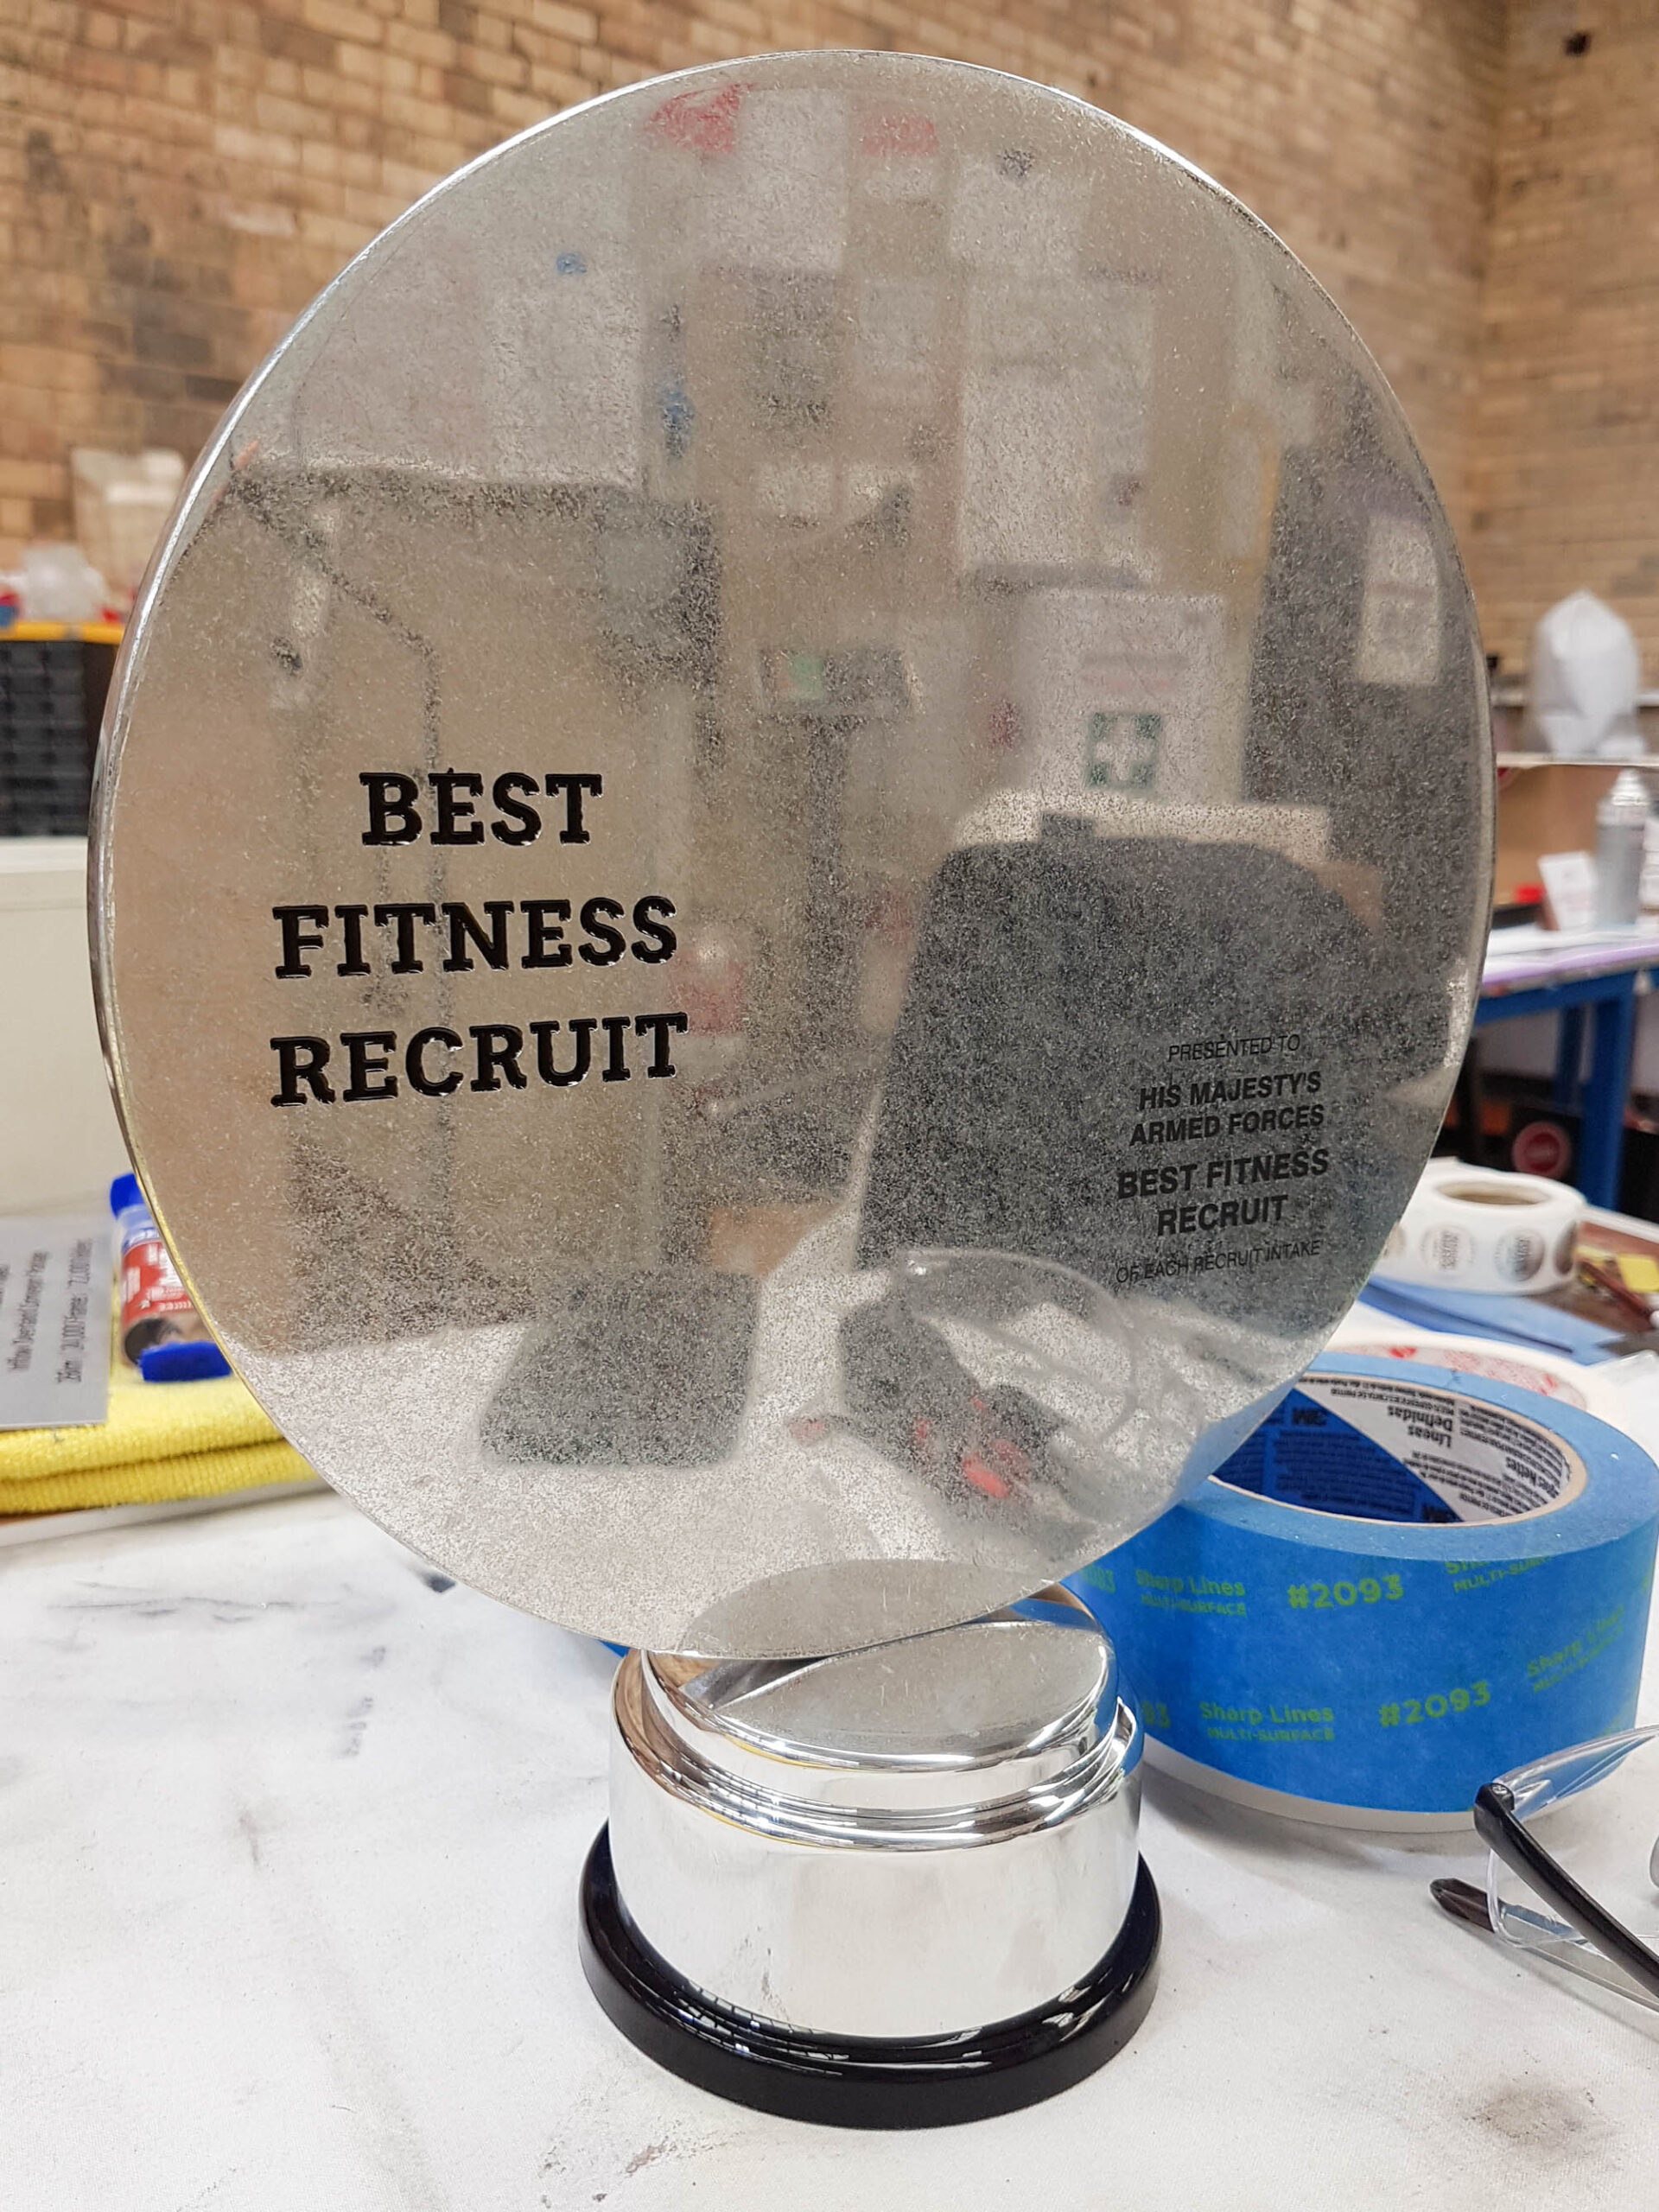 Making of the HMAF Best Fitness Recruit Award